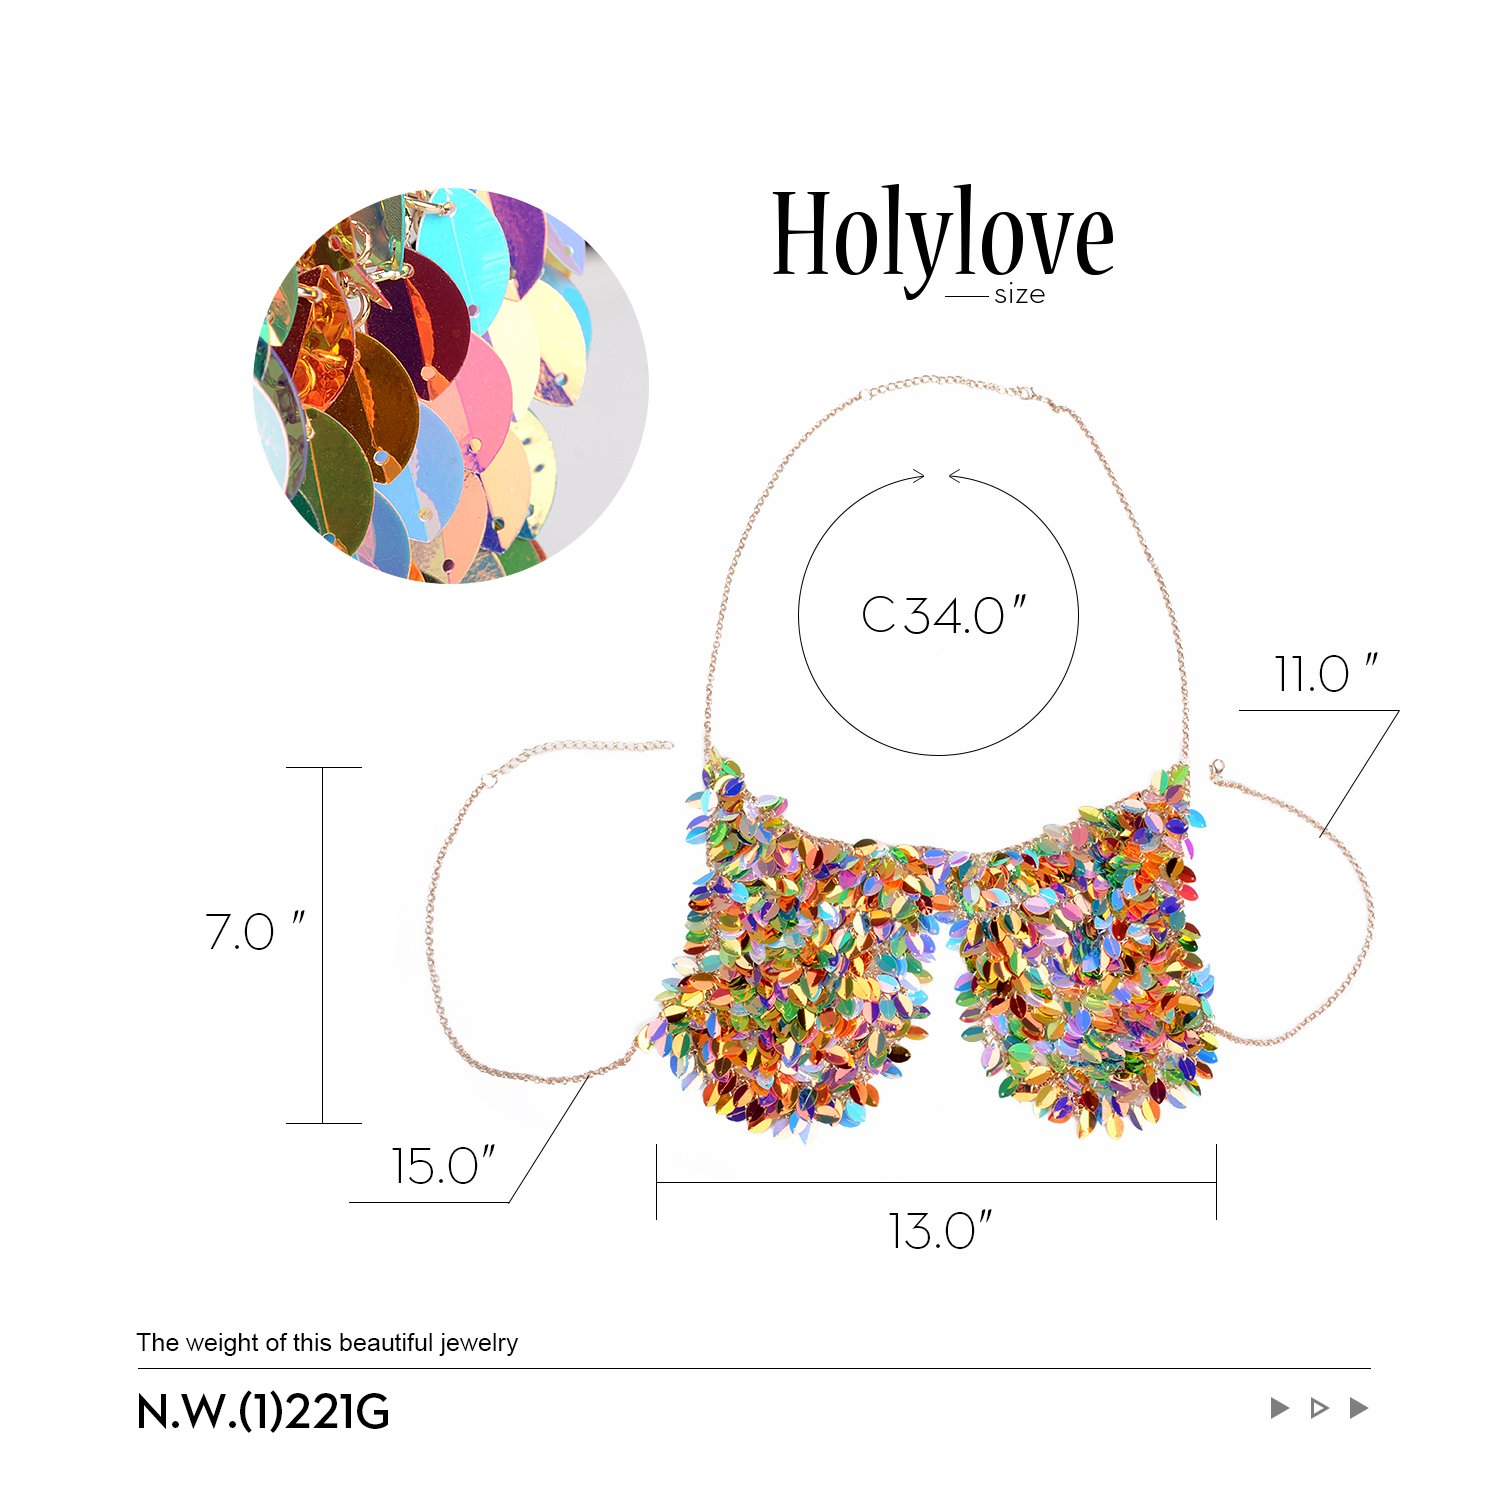 Holylove Paillette Sequin Bra Tops Body Chain Necklace Jewelry Colorful Sexy Charm for Women Lady Summer Beach Hawaiian Style Bikini Beachwear - HLBN5 Colorful by Holylove (Image #3)